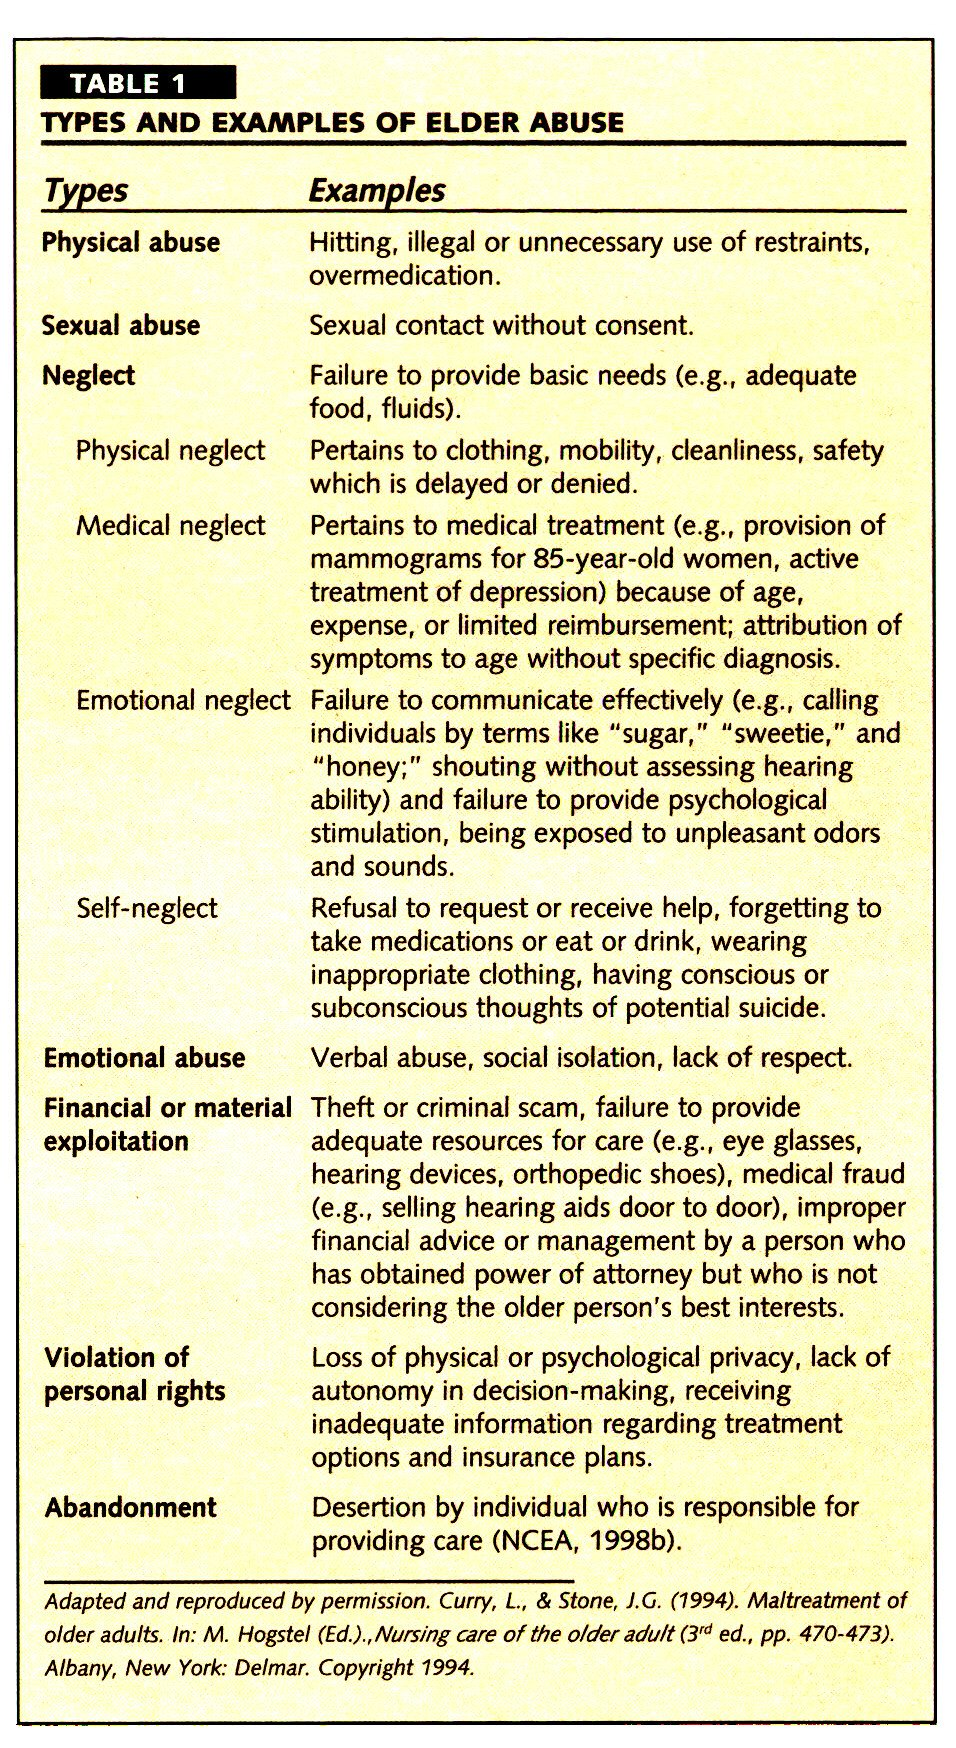 TABLE 1TYPES AND EXAMPLES OF ELDER ABUSE